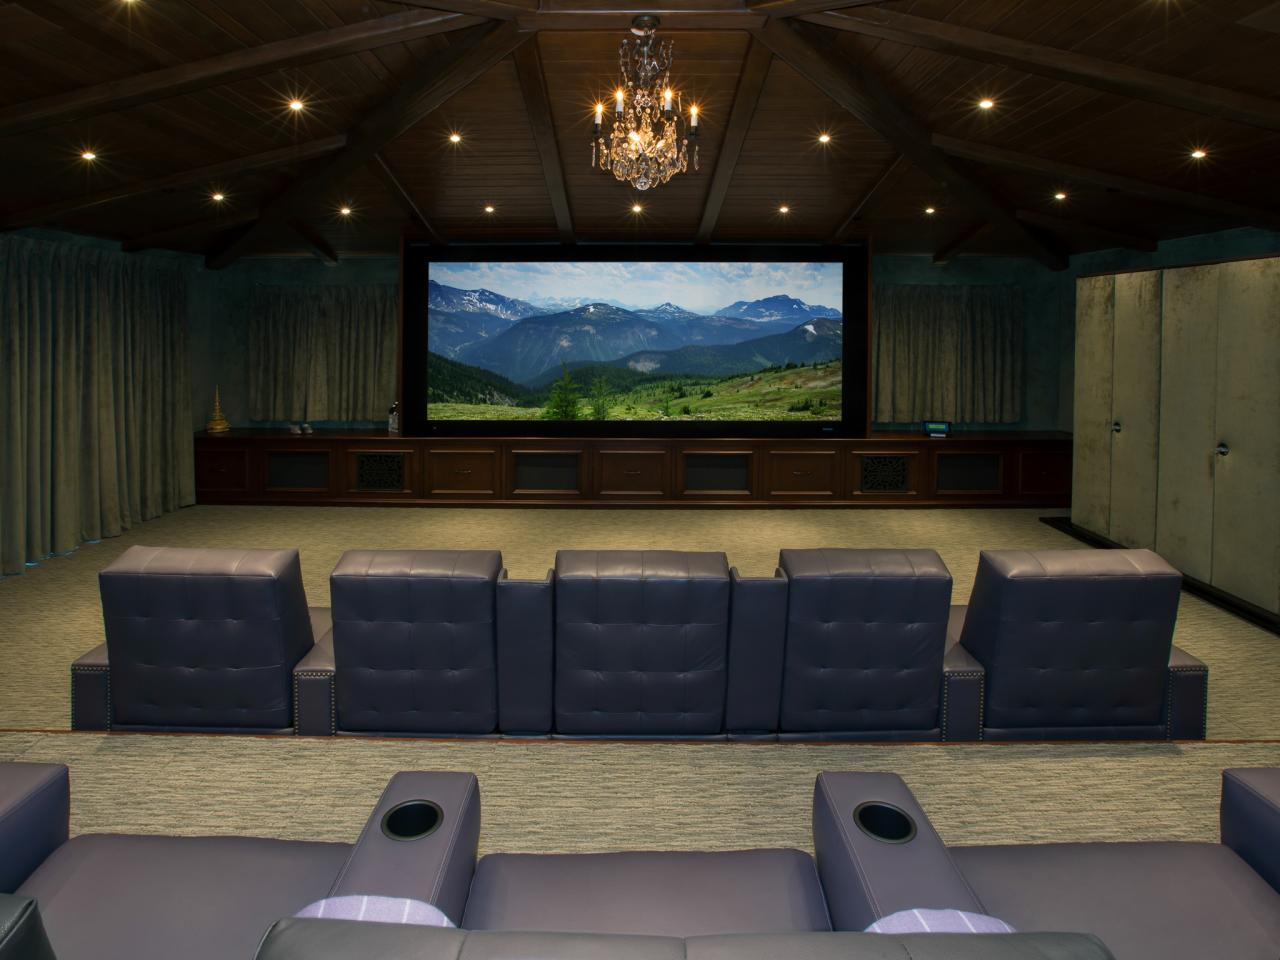 Media Room Seating Ideas Pictures Options Tips amp Ideas